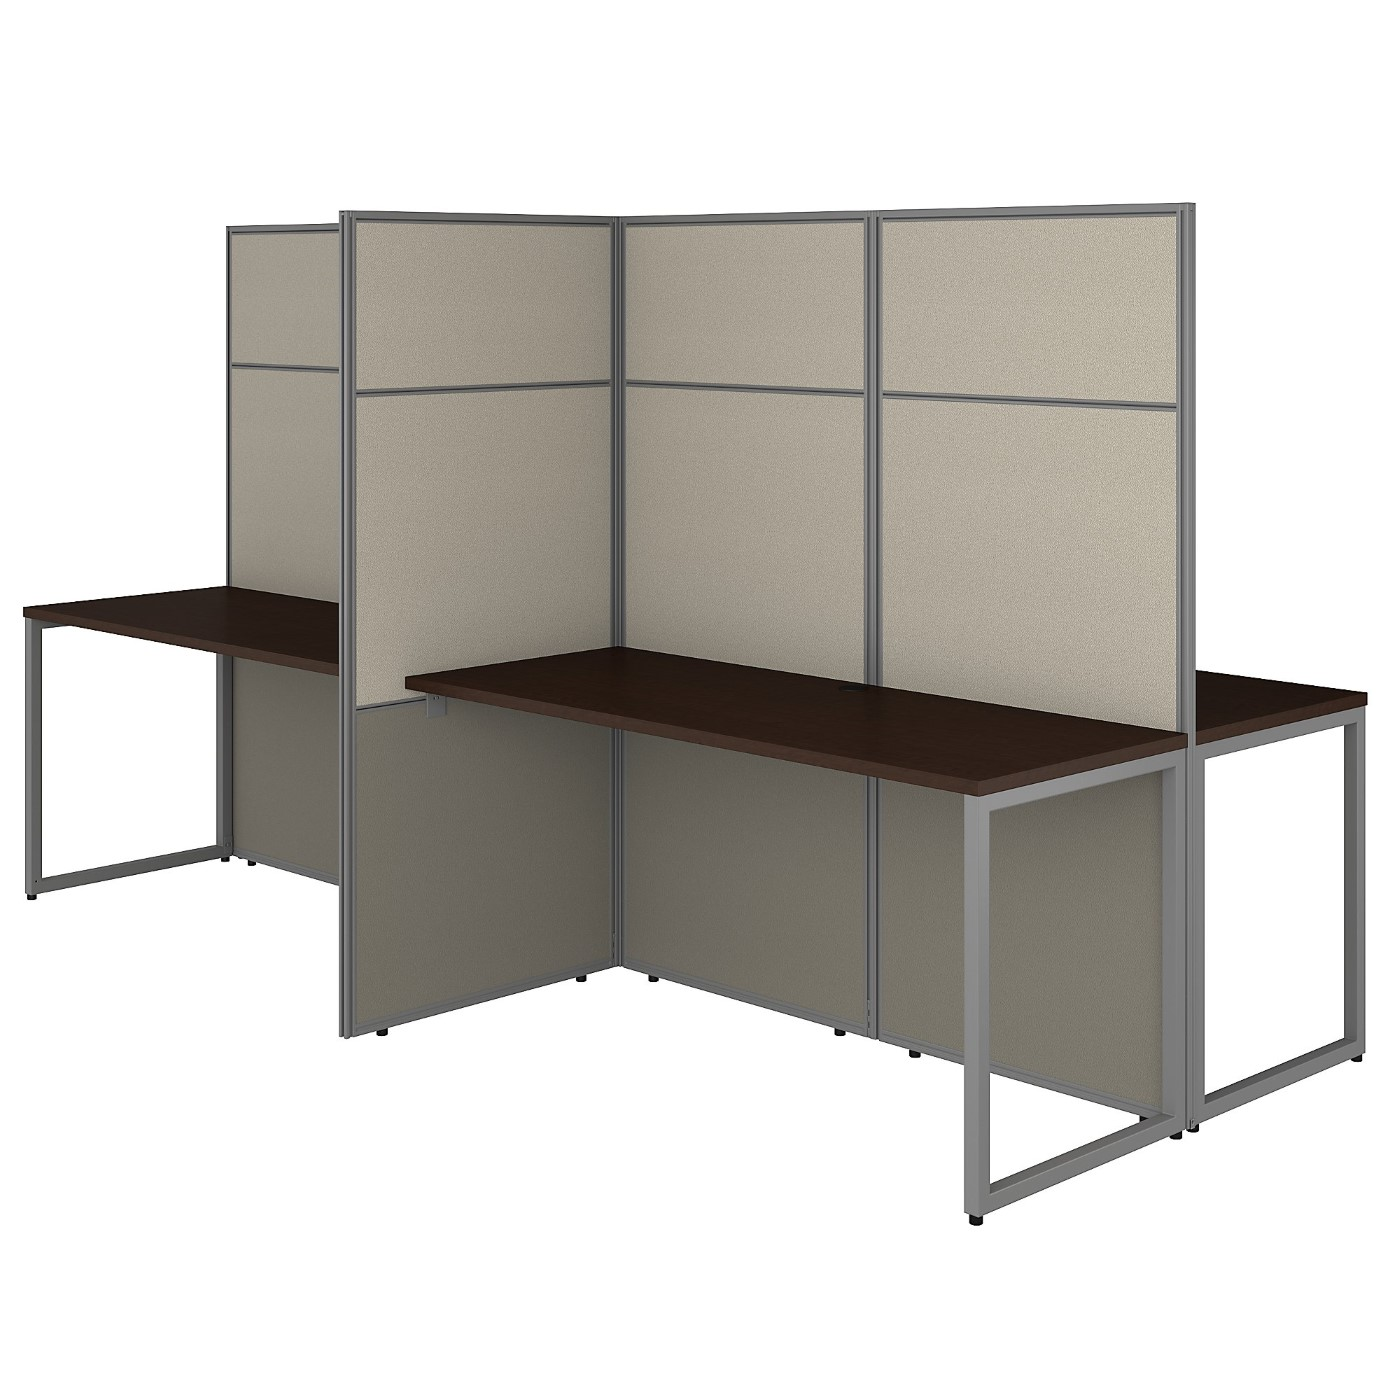 BUSH BUSINESS FURNITURE EASY OFFICE 60W 4 PERSON CUBICLE DESK WORKSTATION WITH 66H PANELS. FREE SHIPPING 30H x 72L x 72W  VIDEO BELOW.  SALE DEDUCT 10% MORE ENTER '10percent' IN COUPON CODE BOX WHILE CHECKING OUT. ENDS 5-31-20.